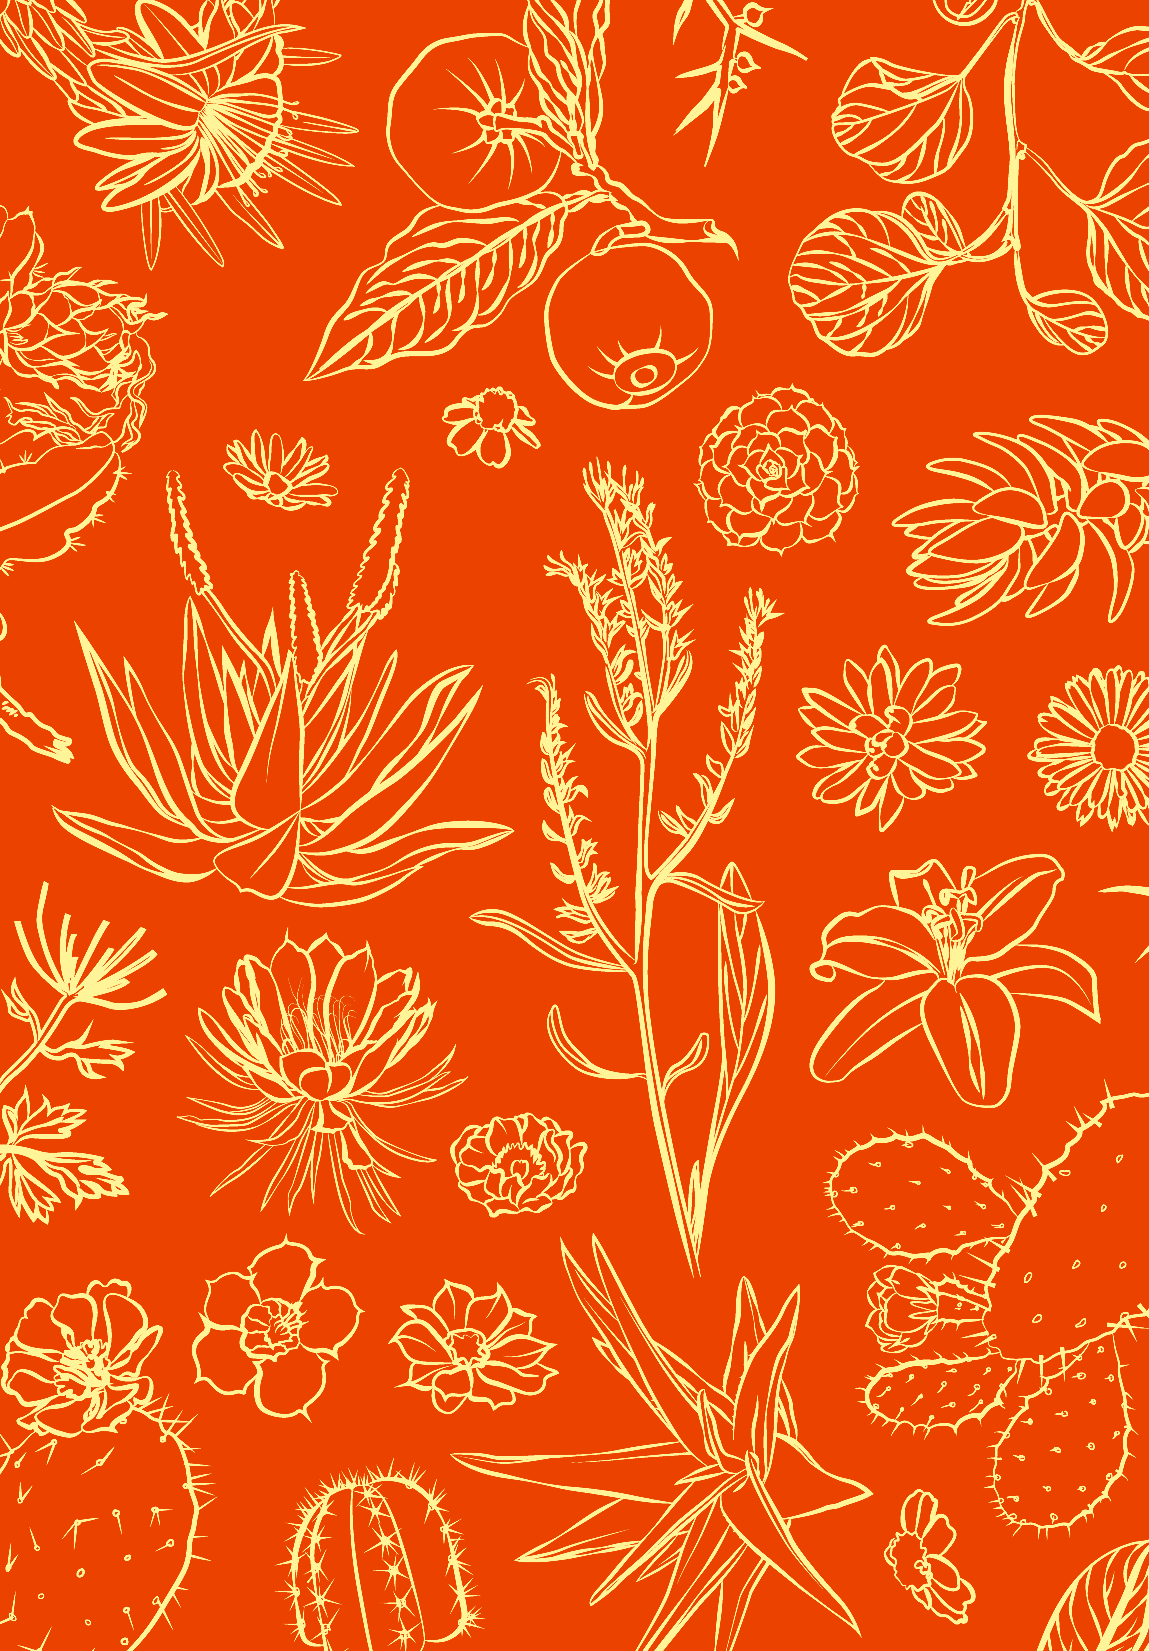 Goodspeed_Illustration_Floral-Pattern.png